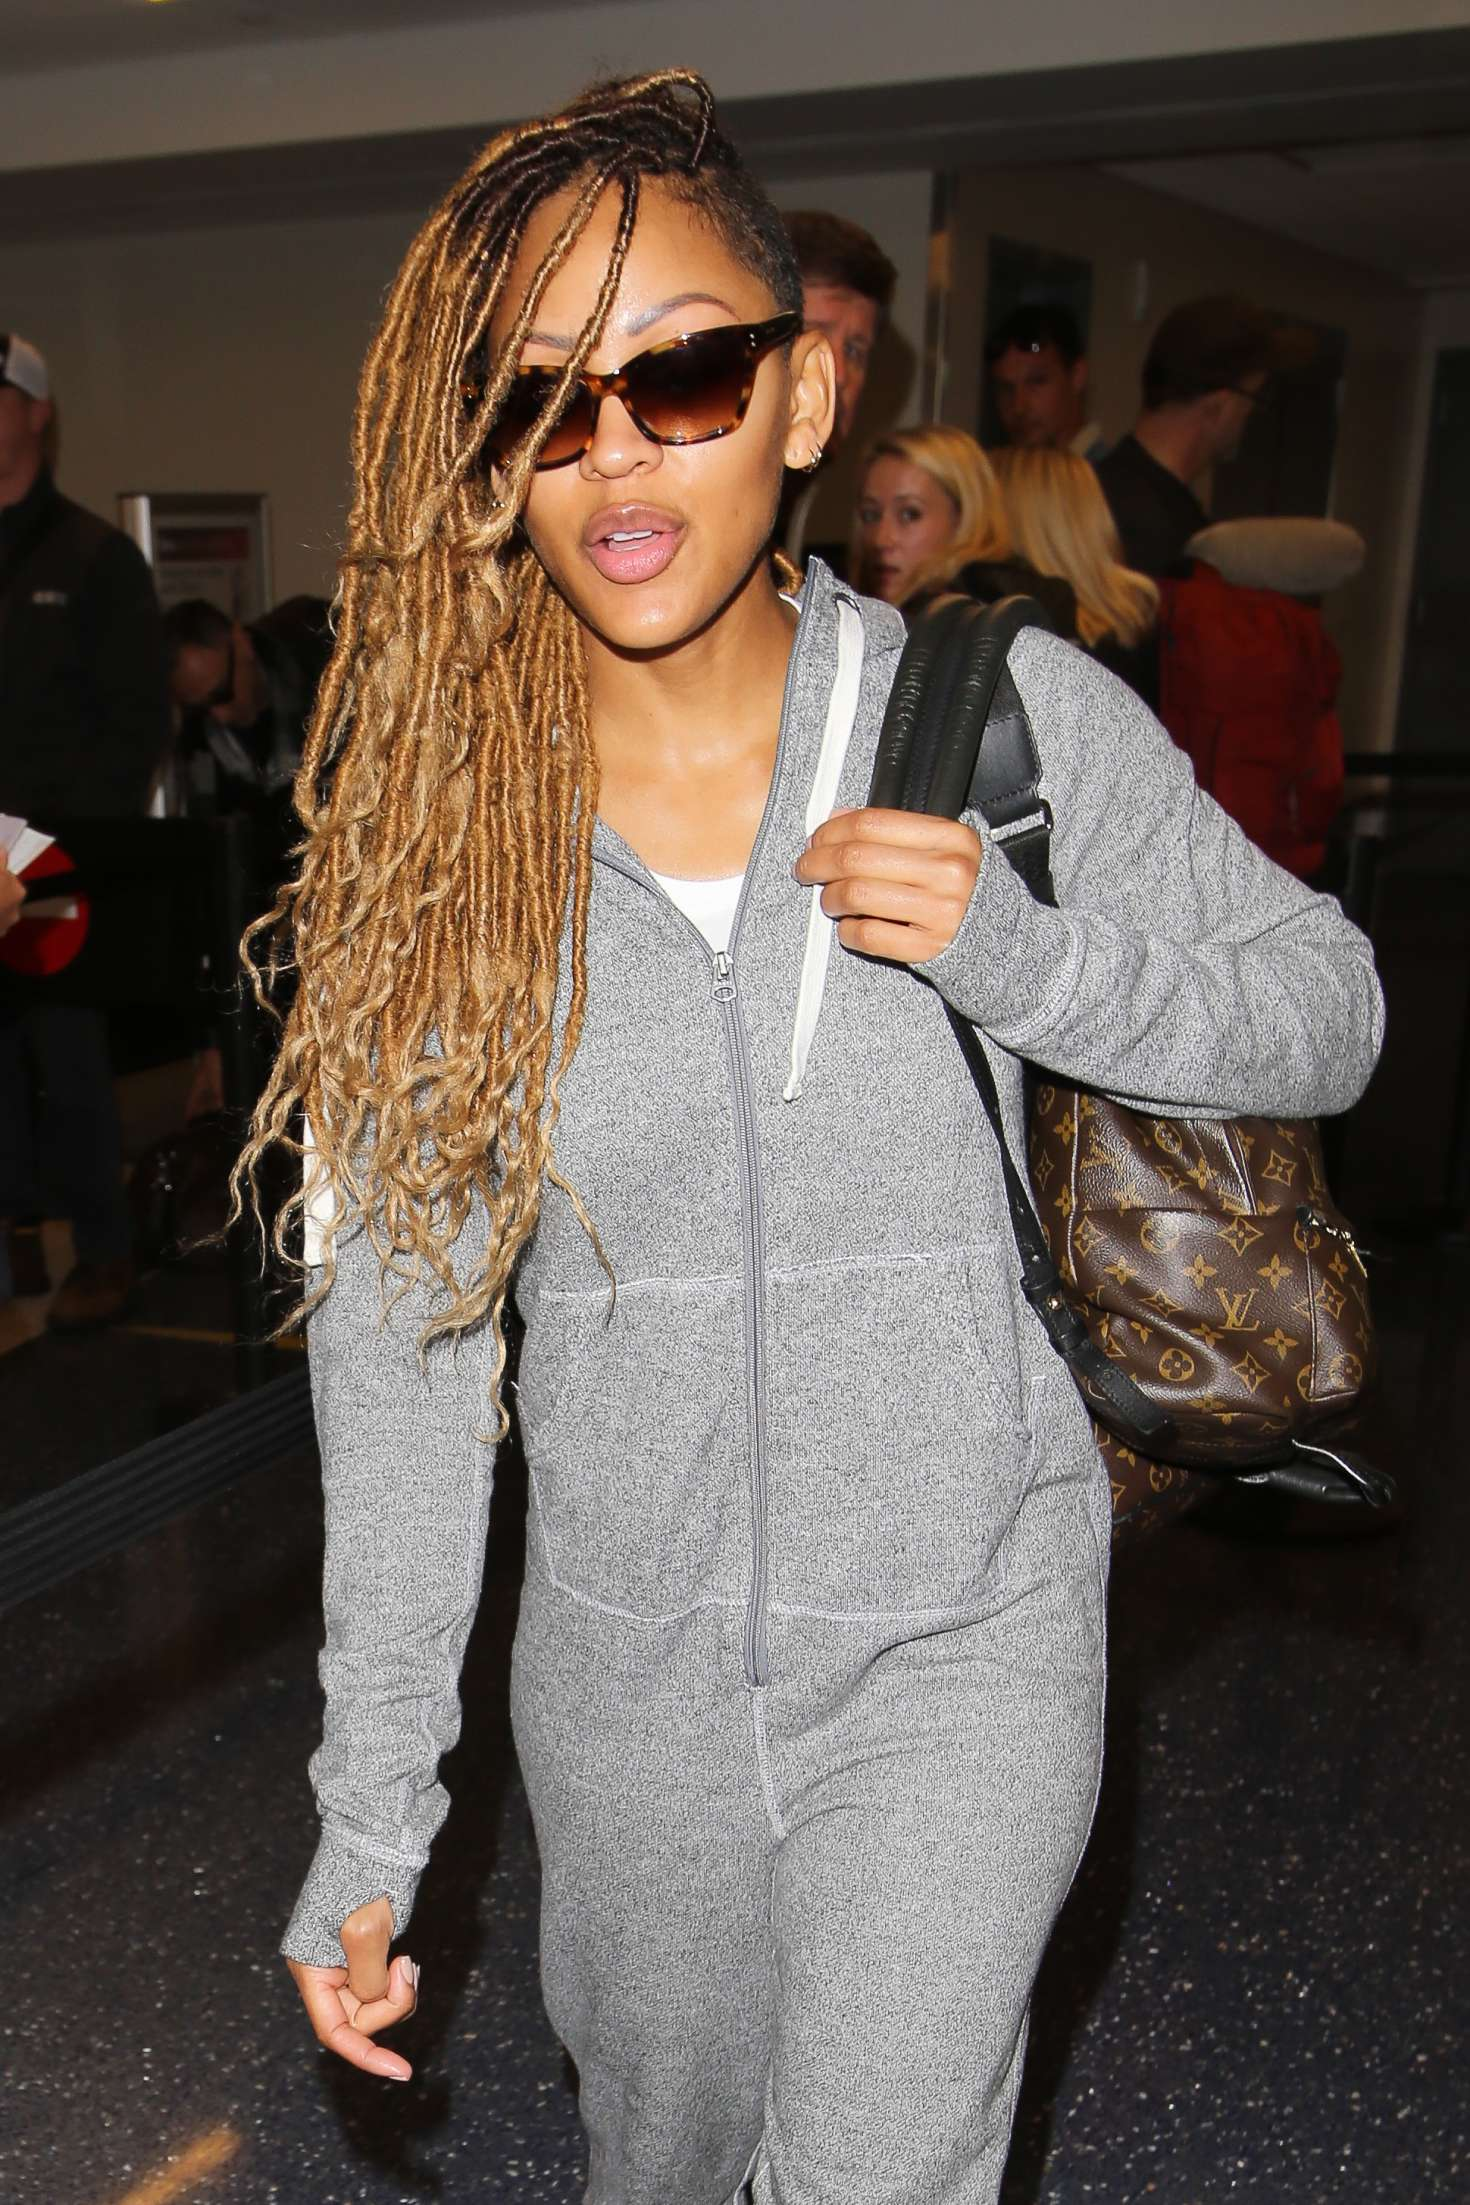 Meagan Good In Jumpsuit At Lax Airport In Los Angeles